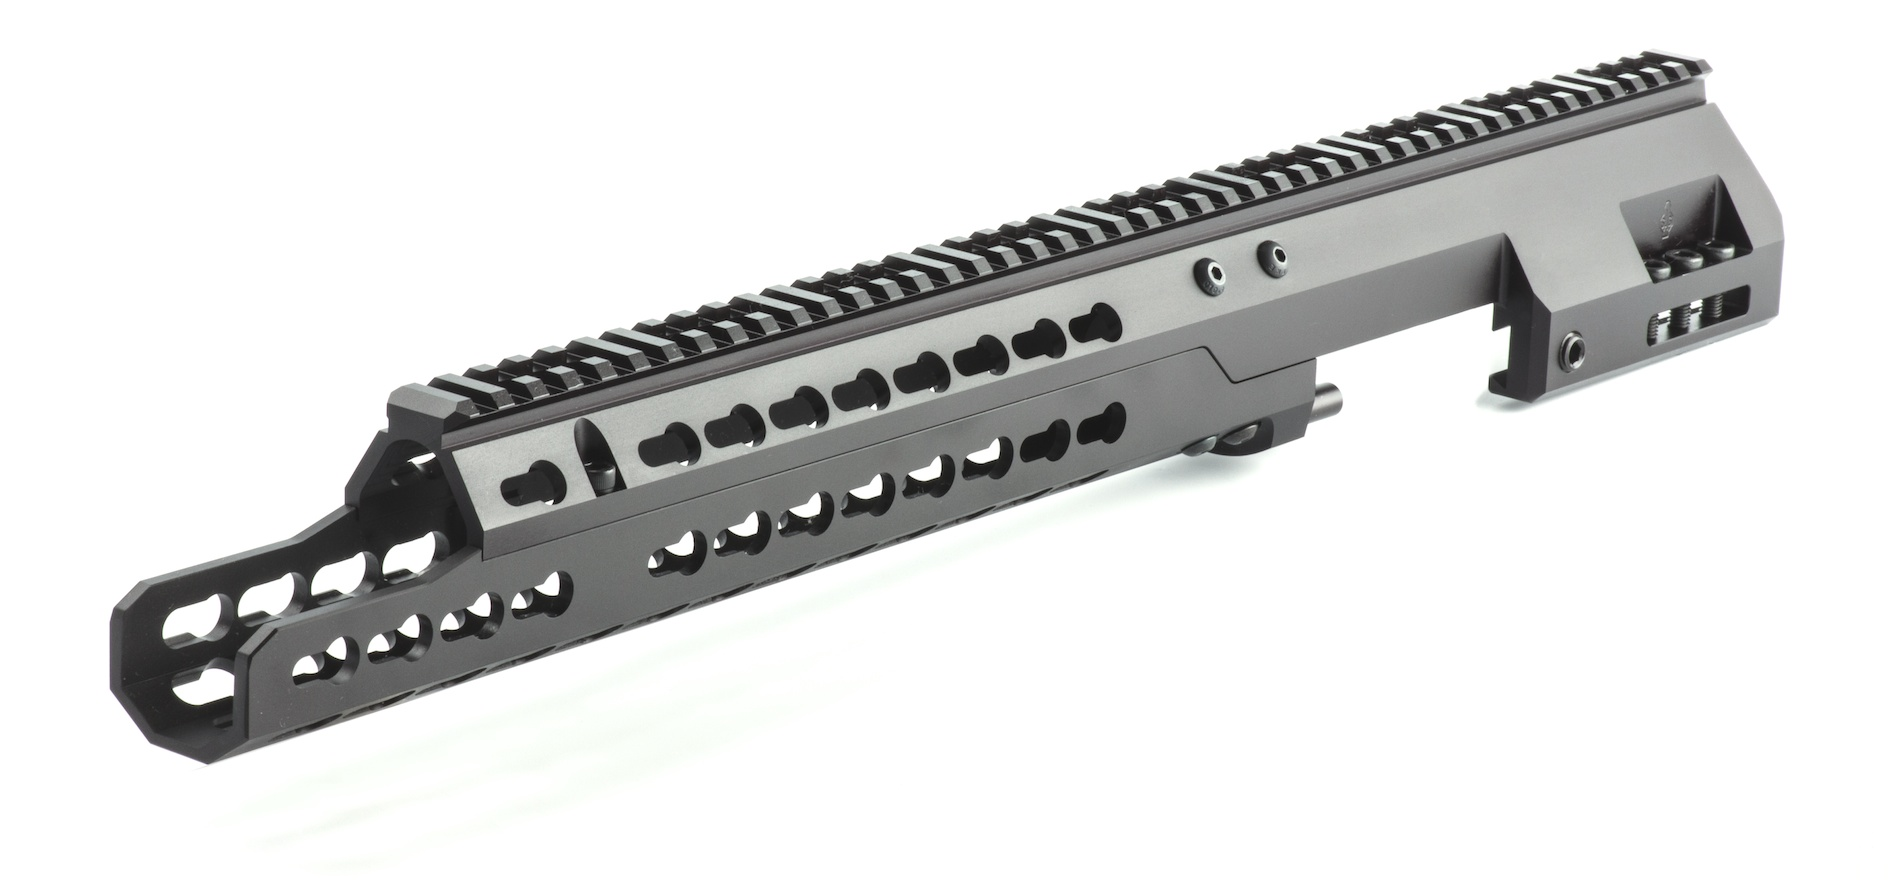 SVD chassis by SAG